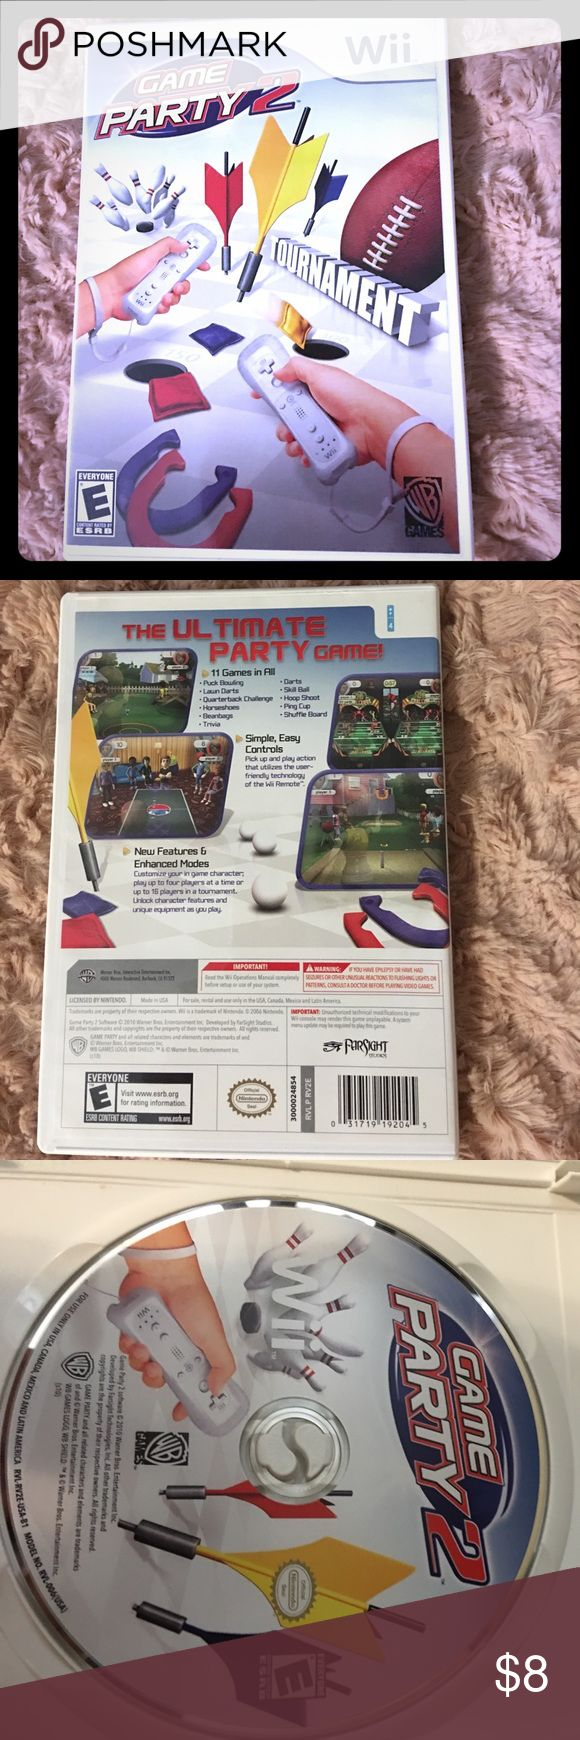 Game Party 2 Wii game: Game Party 2. Rarely used. Includes 11 party games: puck bowling, lawn darts, quarterback challenge, horseshoes, beanbags, trivia, darts, skill ball, hoop shoot, ping cup, & shuffle board. Nintendo Other